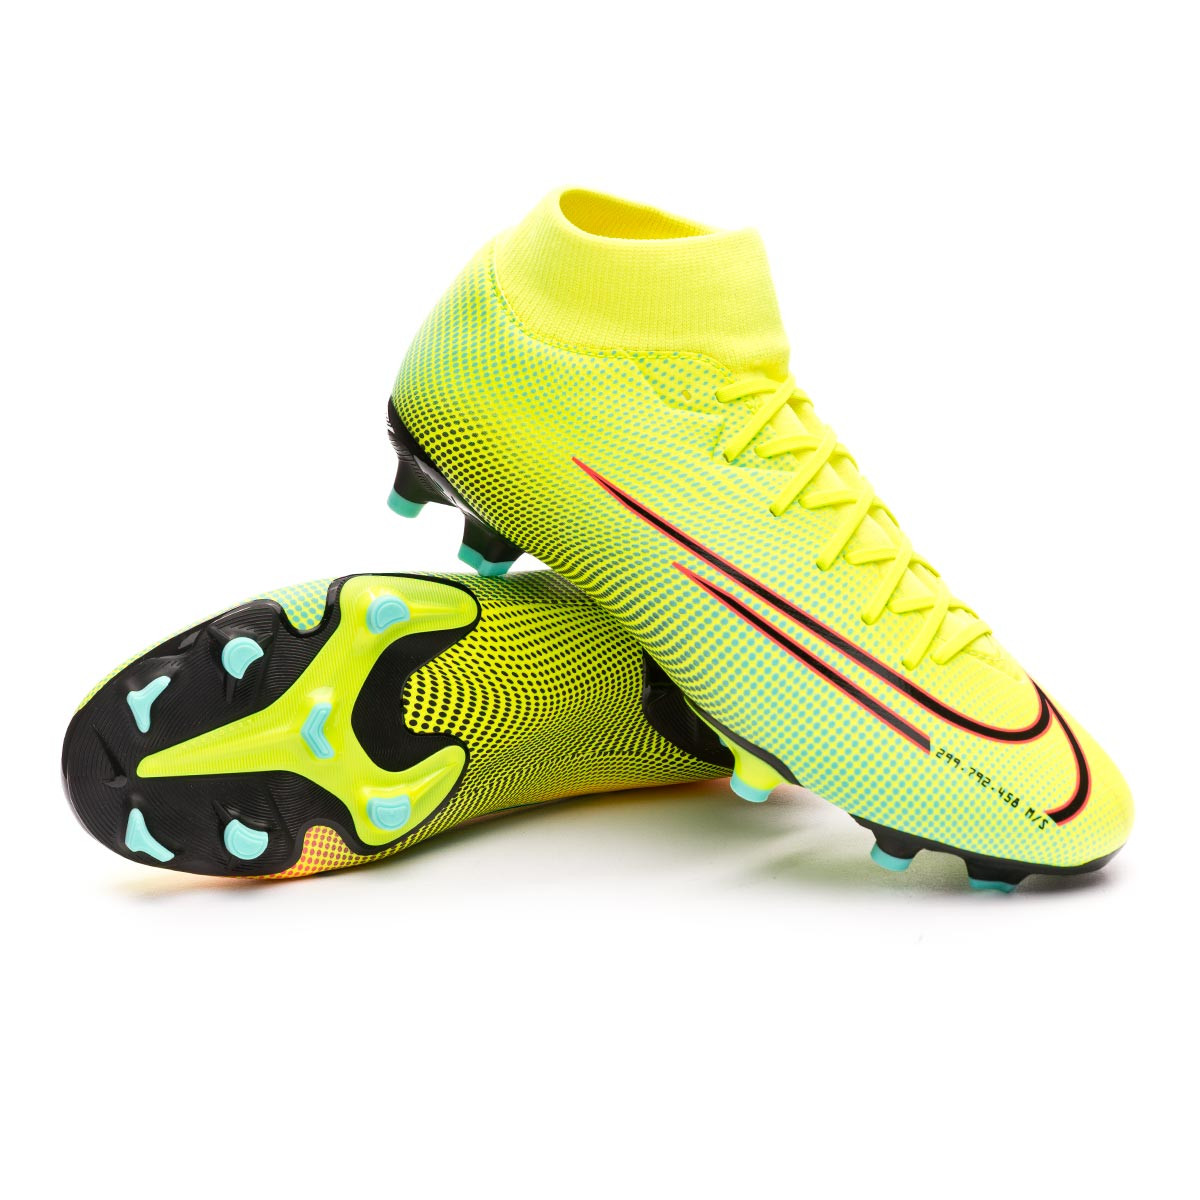 Cheap Nike Superfly 7 Academy, Fake Nike Mercurial Superfly Academy Boots